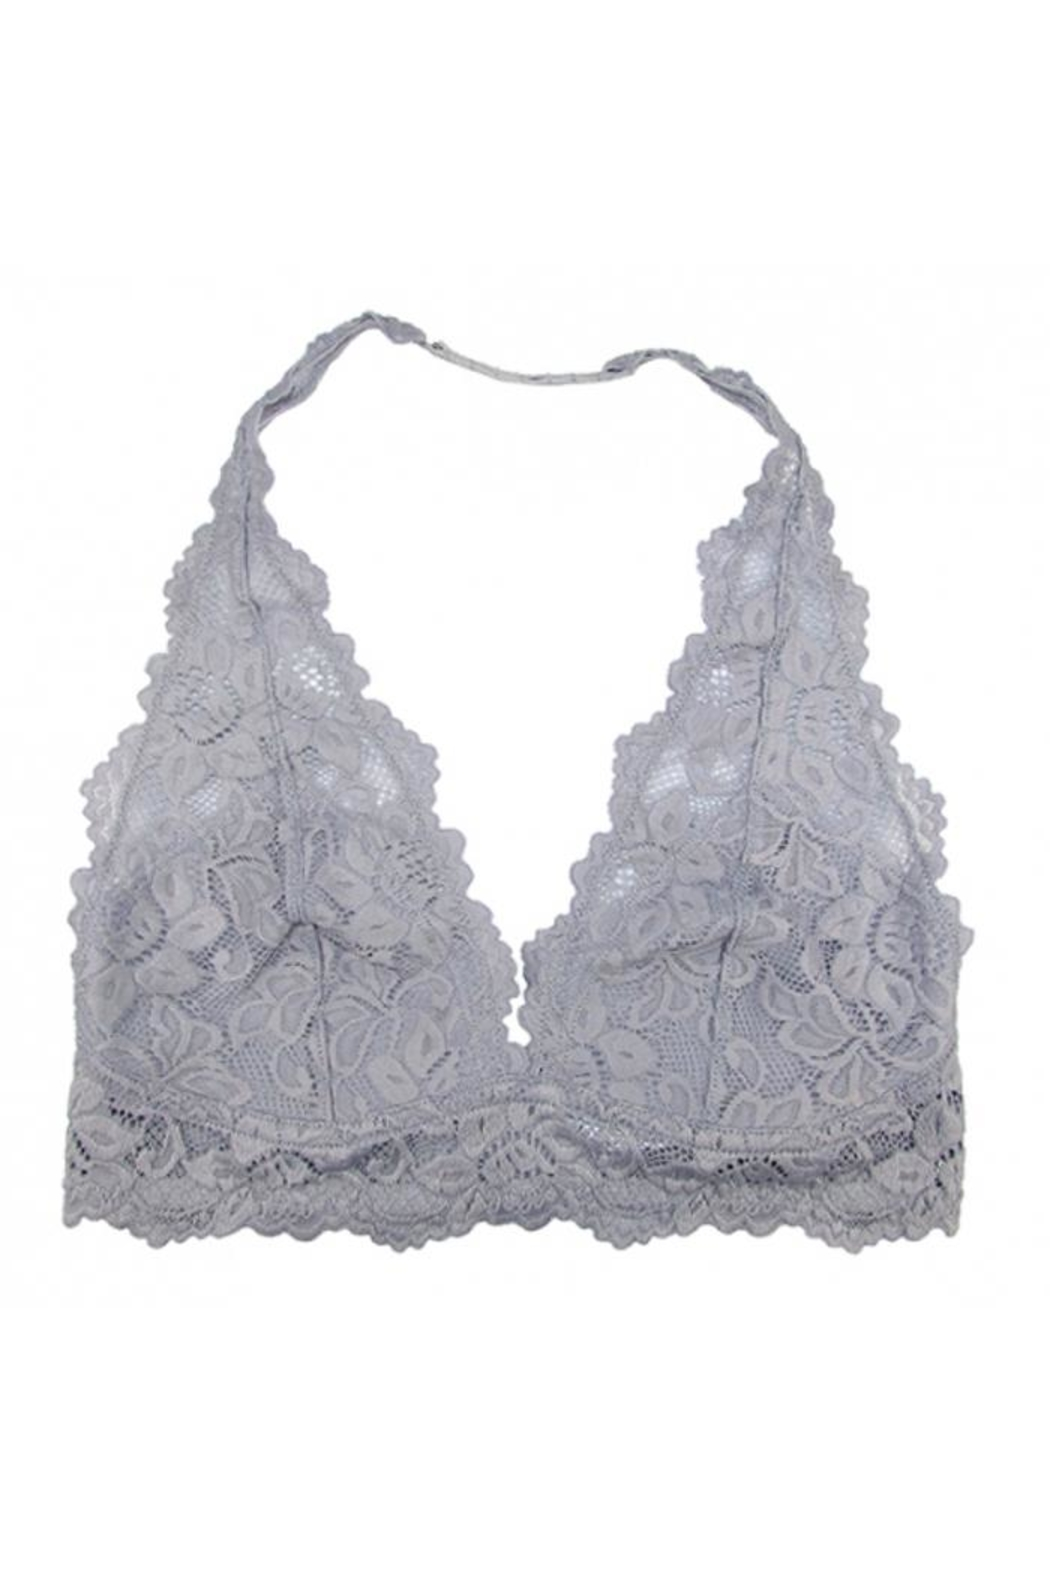 b831e71f8f Coobie Halter Lace Bralette from Florida by Dressing Room Boutique ...